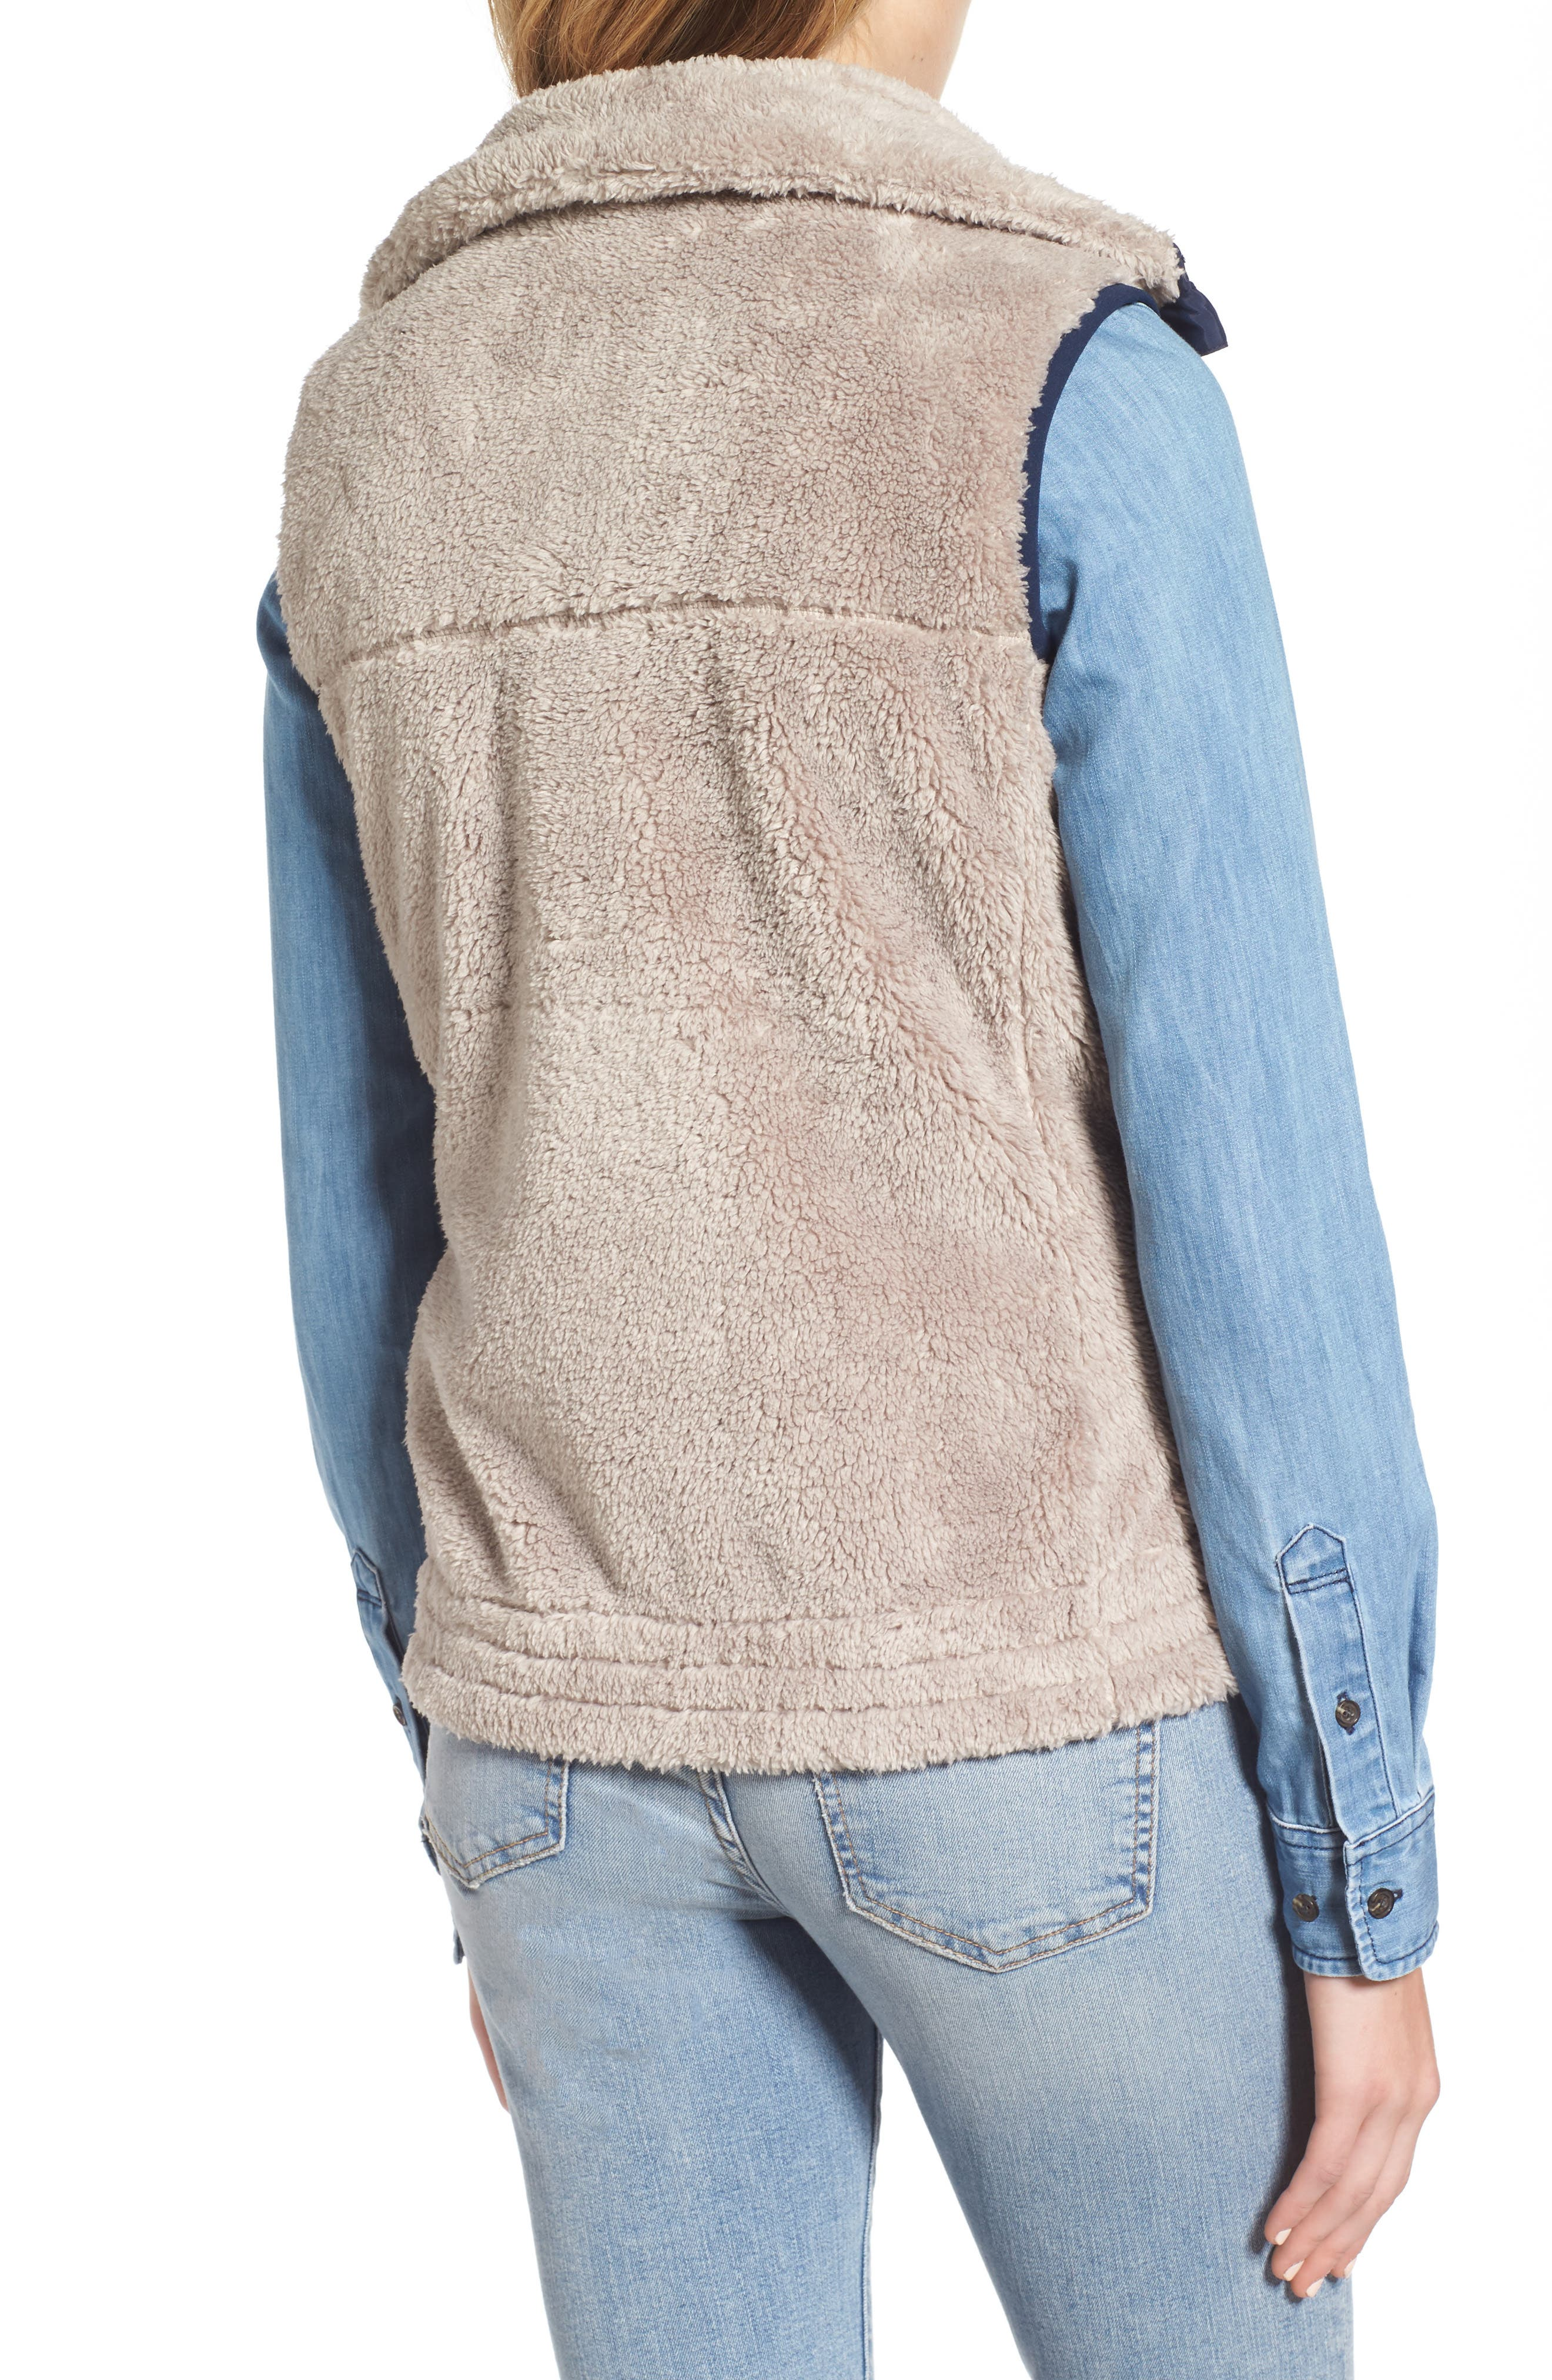 Fleece Vest,                             Alternate thumbnail 2, color,                             252